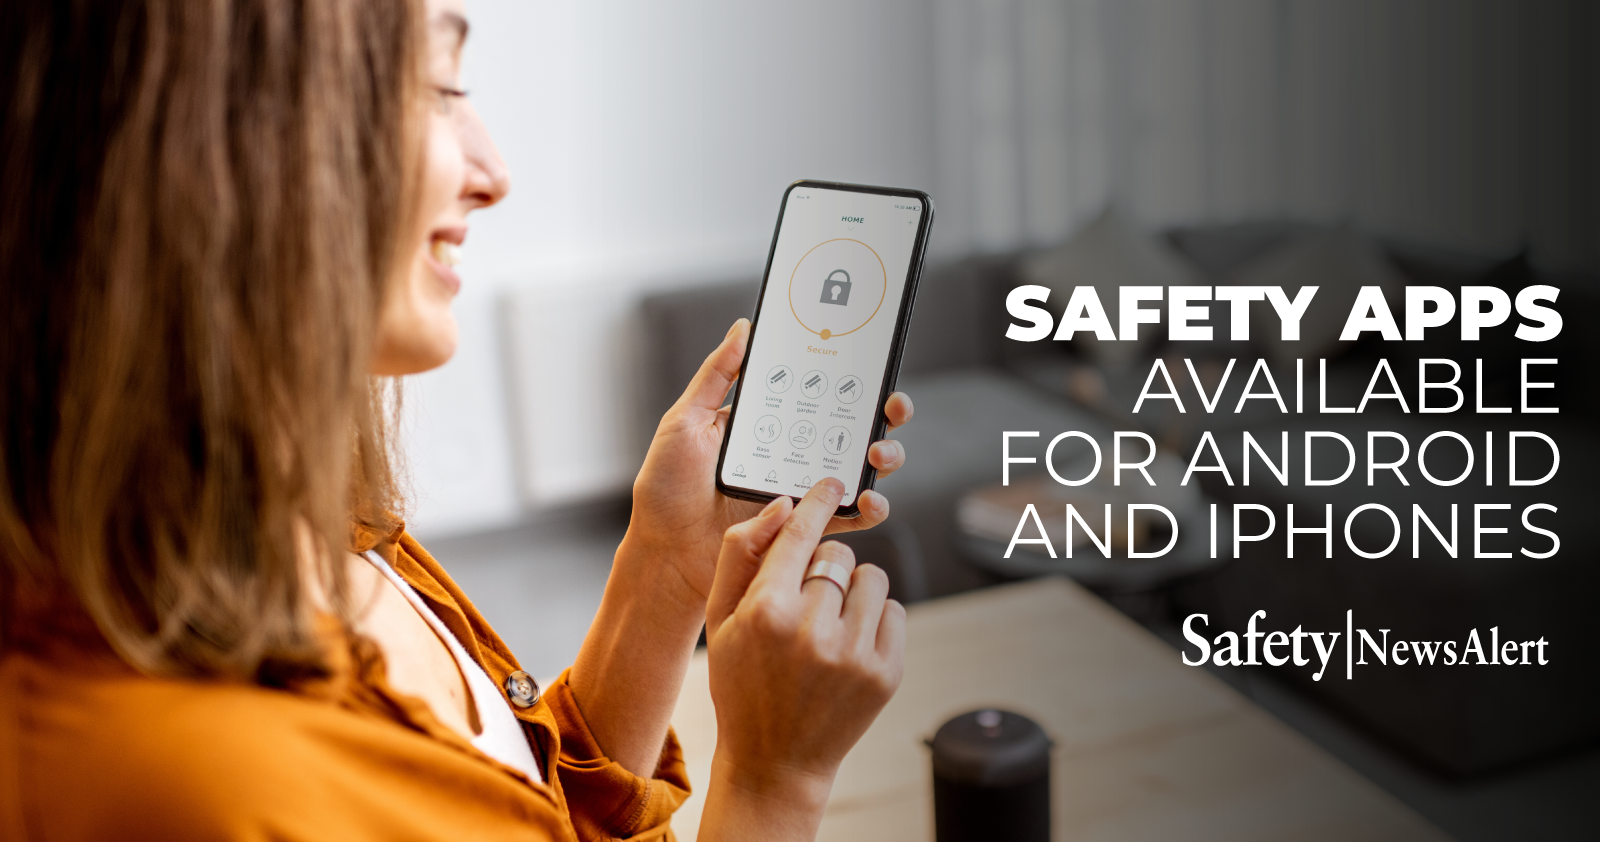 Safety Apps Available For Android And iPhones